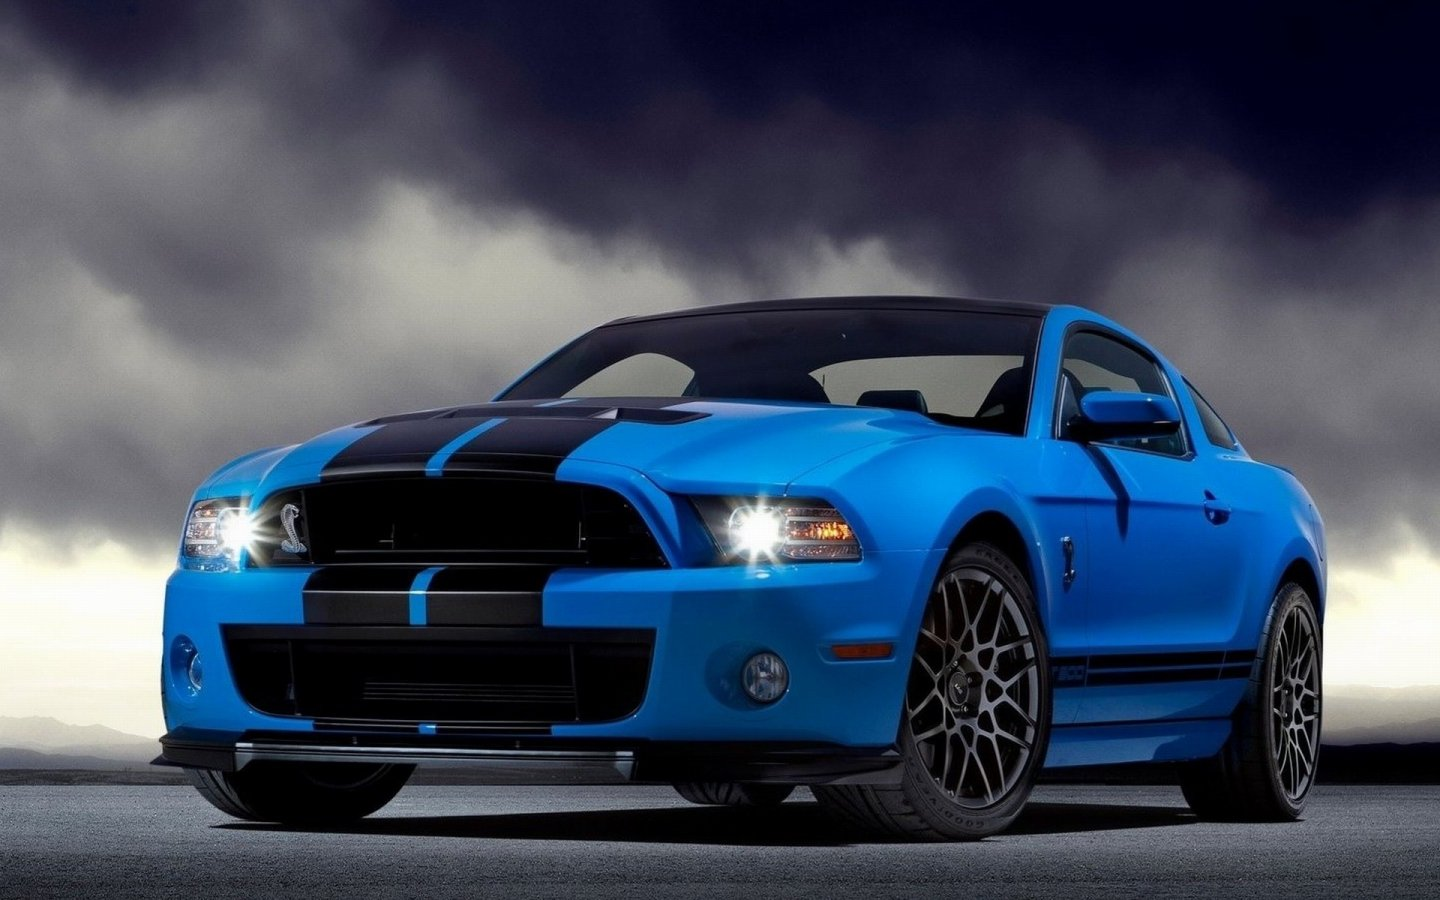 Ford Mustang Shelby GT500 2013 1440x900 WallpapersFord Mustang 1440x900